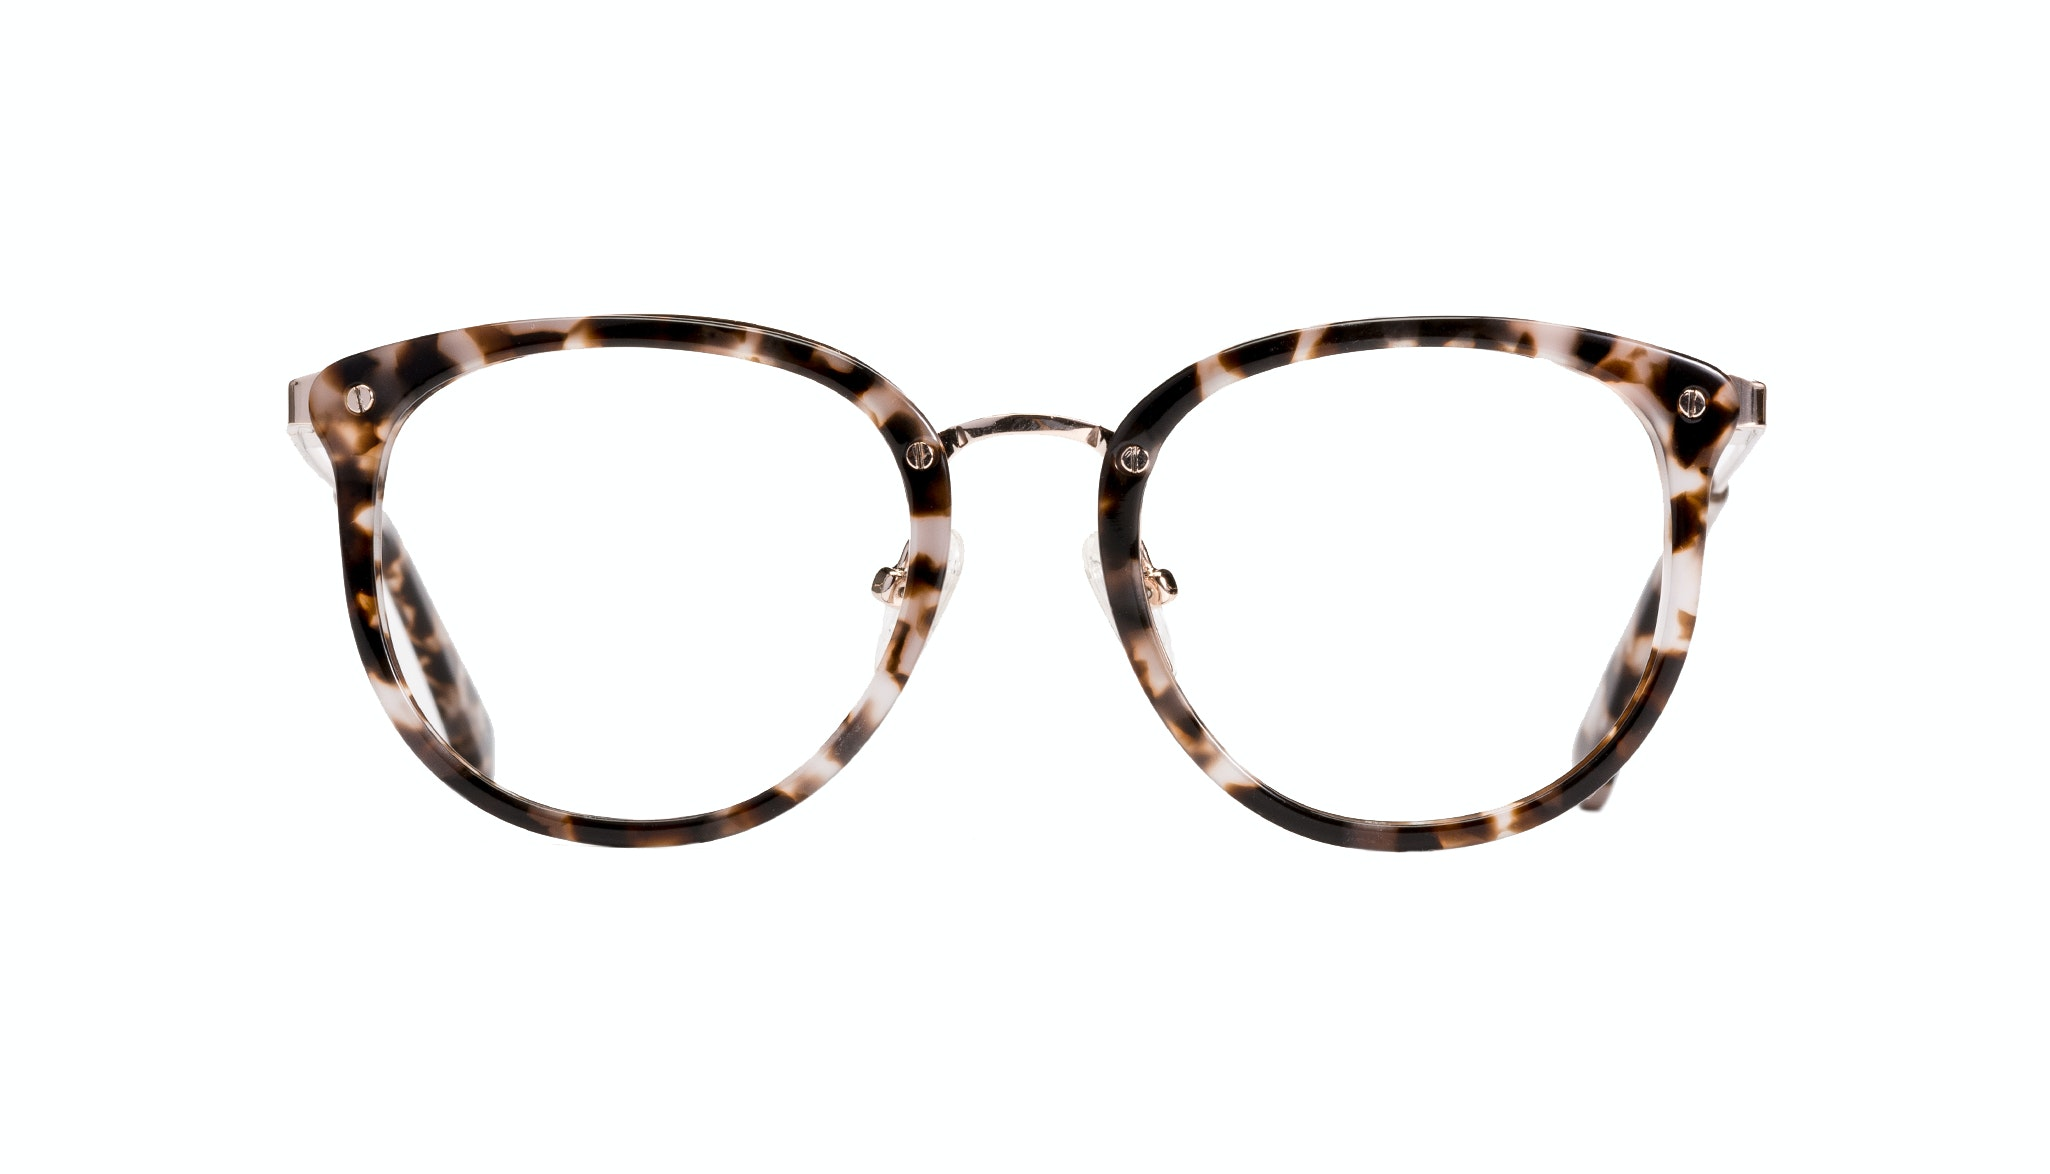 Affordable Fashion Glasses Round Eyeglasses Women Amaze Petite Mocha Tort